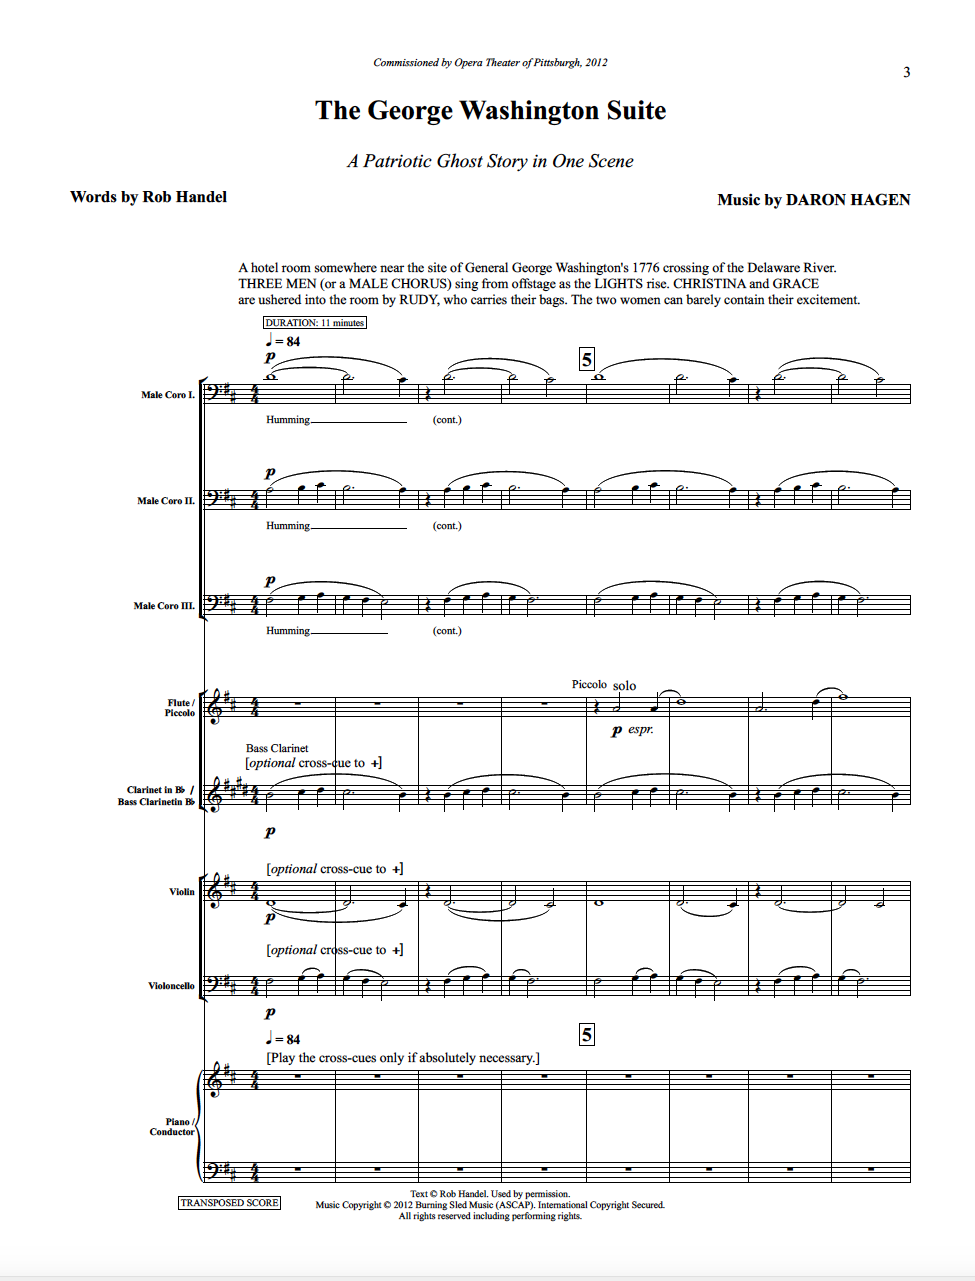 The first page of the full score.